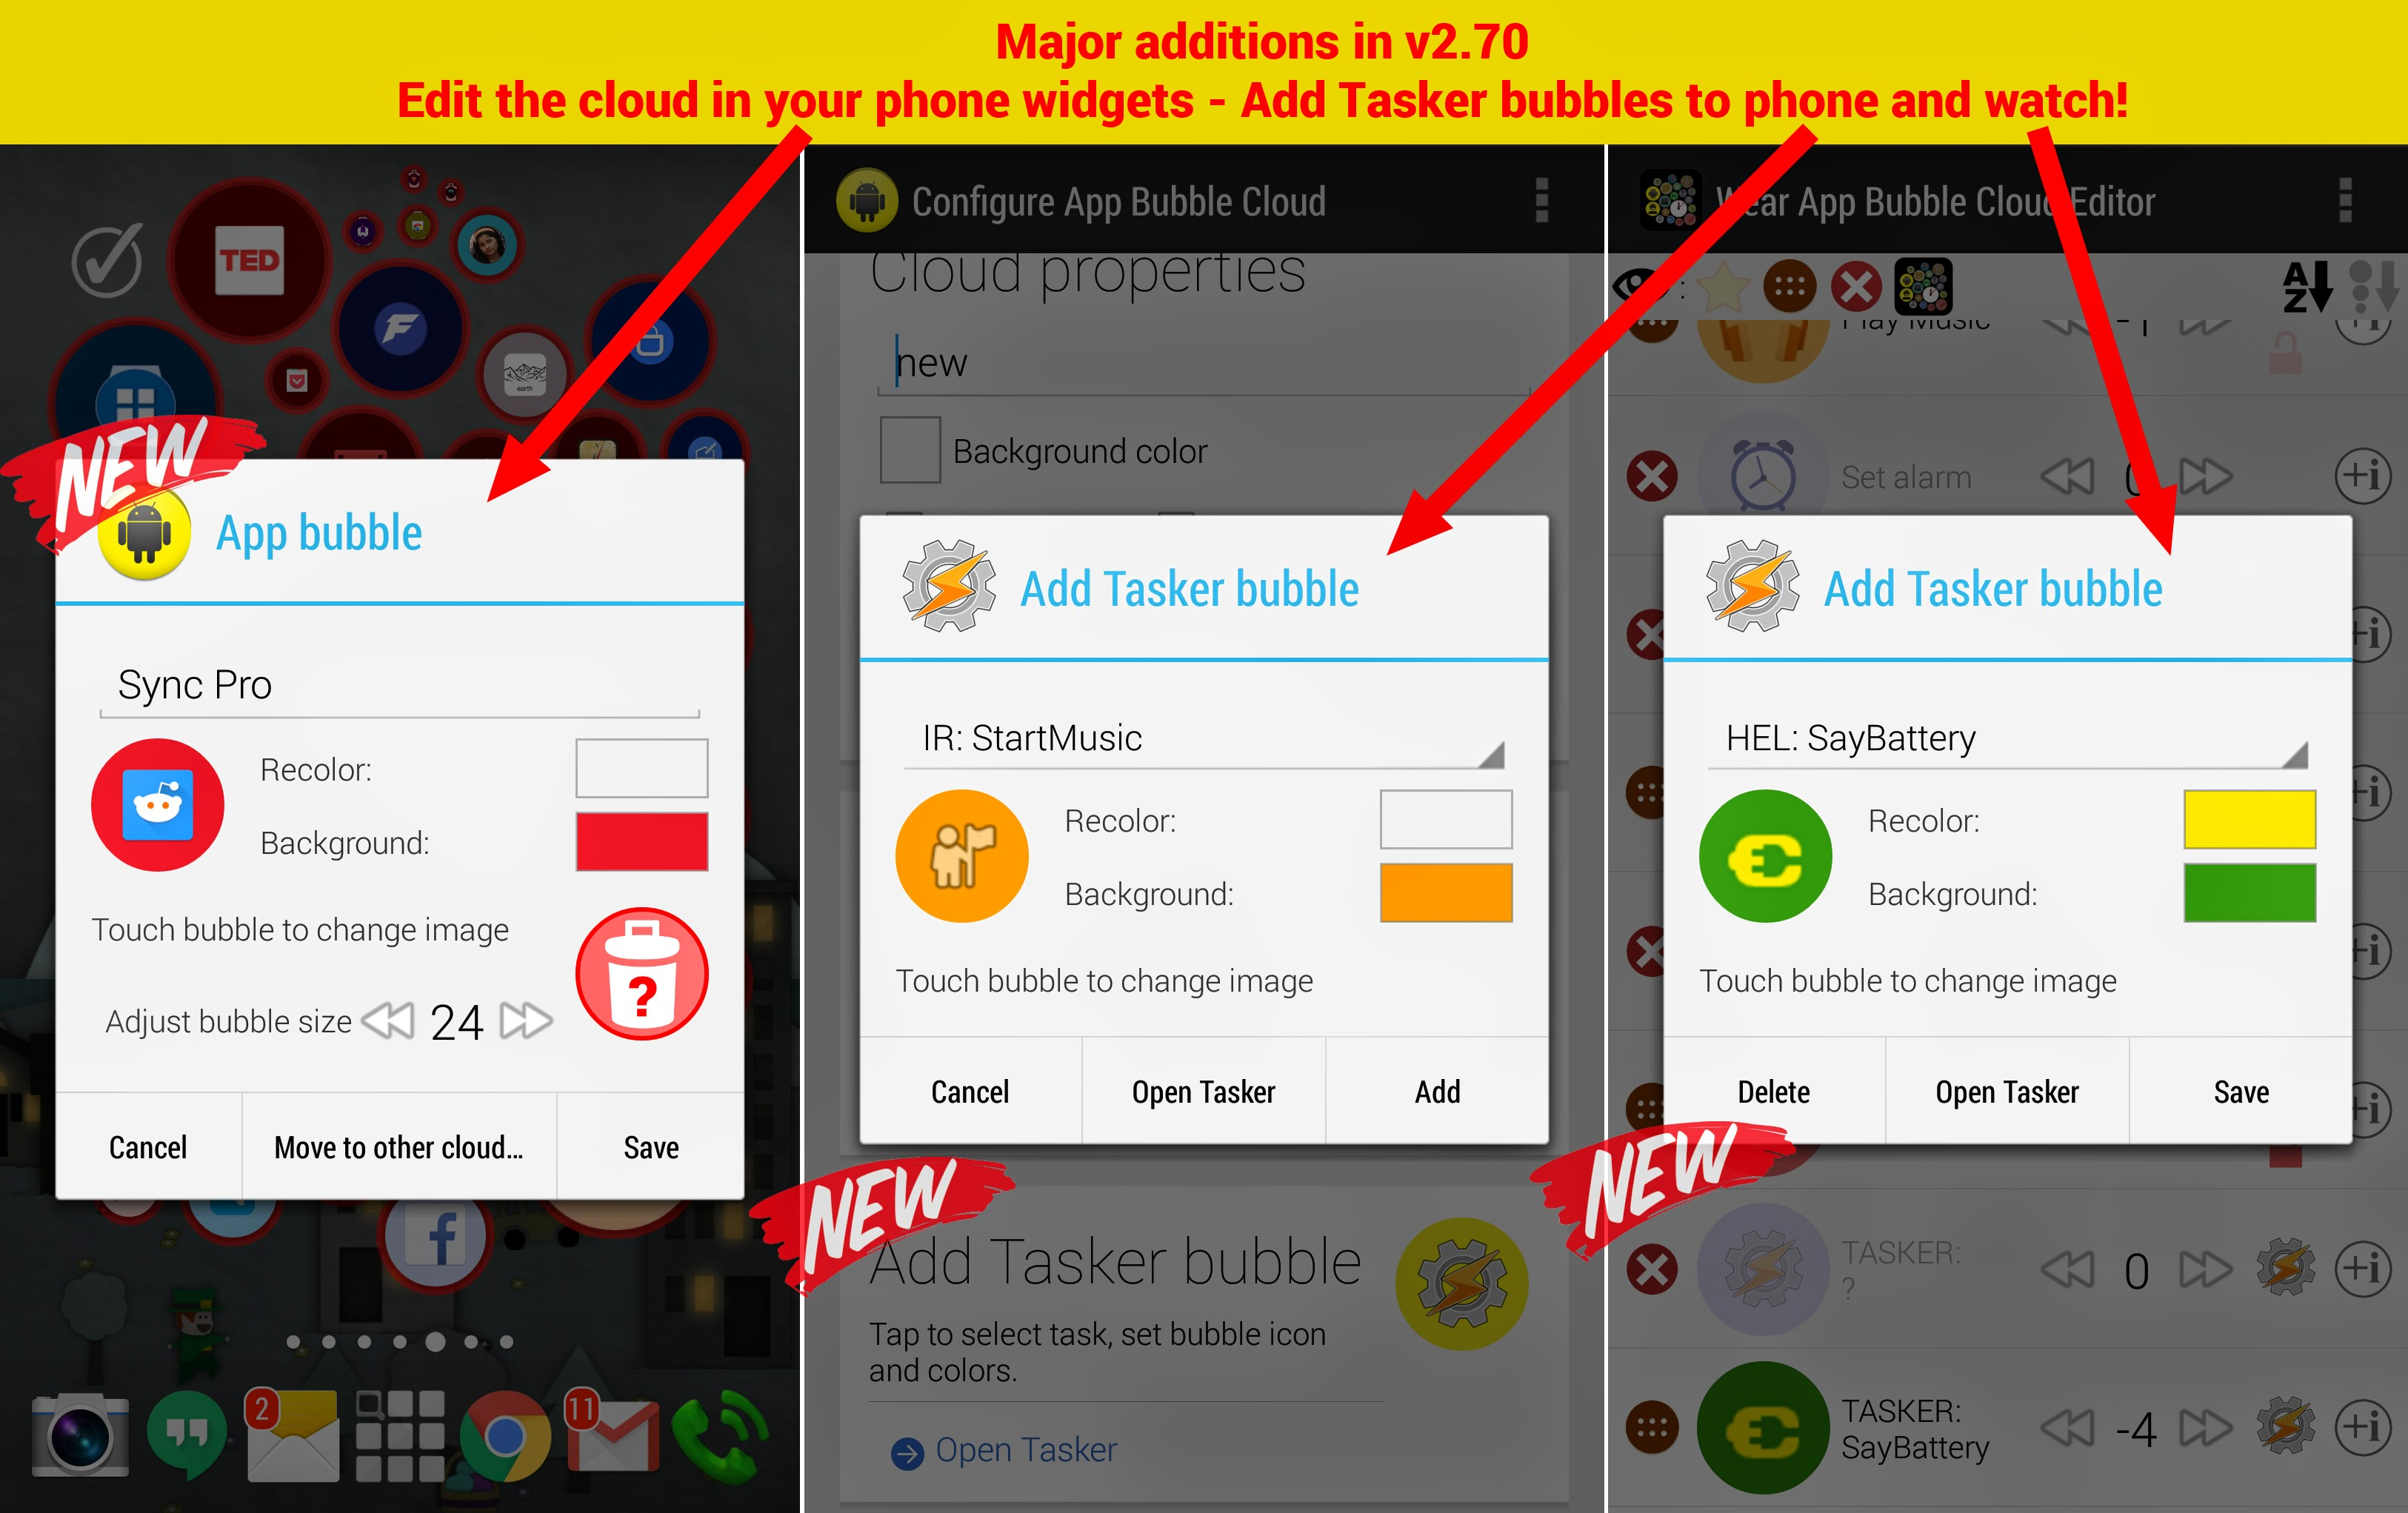 Coming soon: → Edit all bubbles! + Tasker integration!